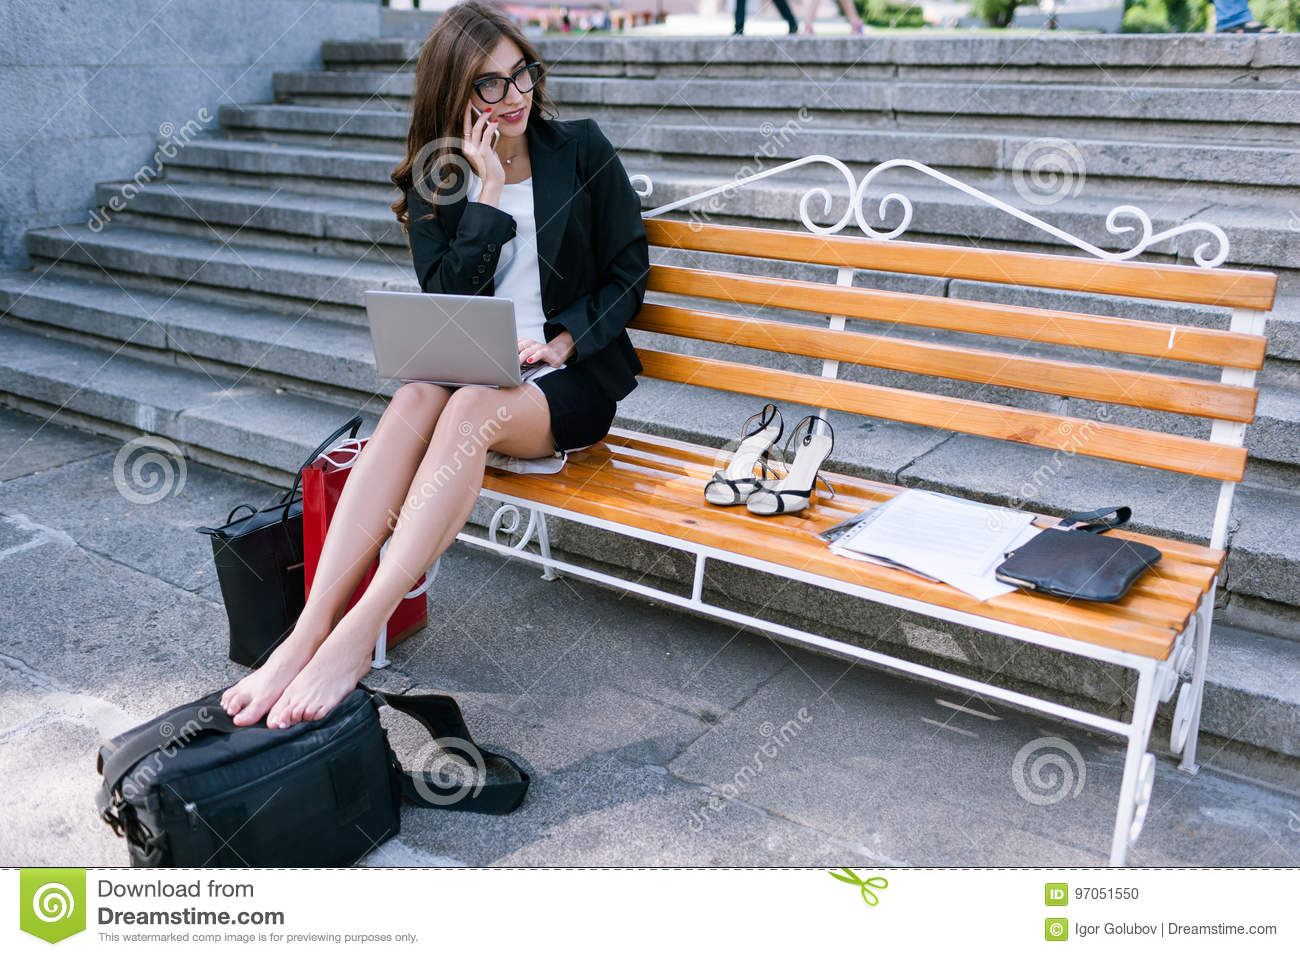 https://thumbs.dreamstime.com/z/young-business-woman-tired-legs-girl-working-street-overworked-secretary-97051550.jpg